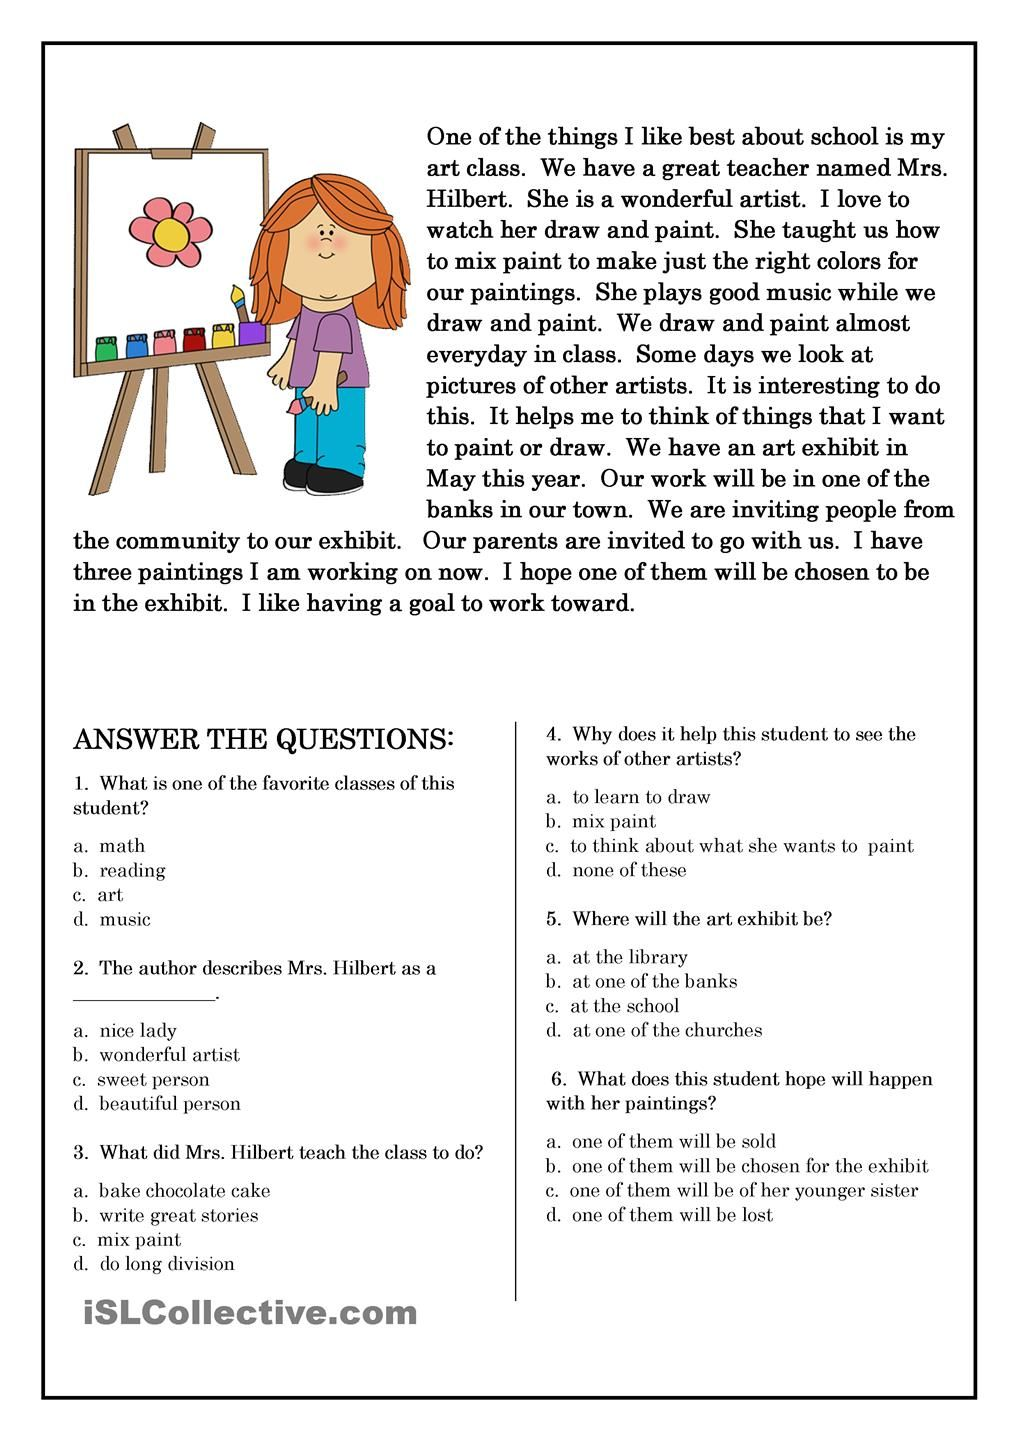 Worksheets Free Reading Comprehension Worksheets For Middle School worksheet comprehension for grade 5 wosenly free printable 6 english worksheets south africa templates and comprehension